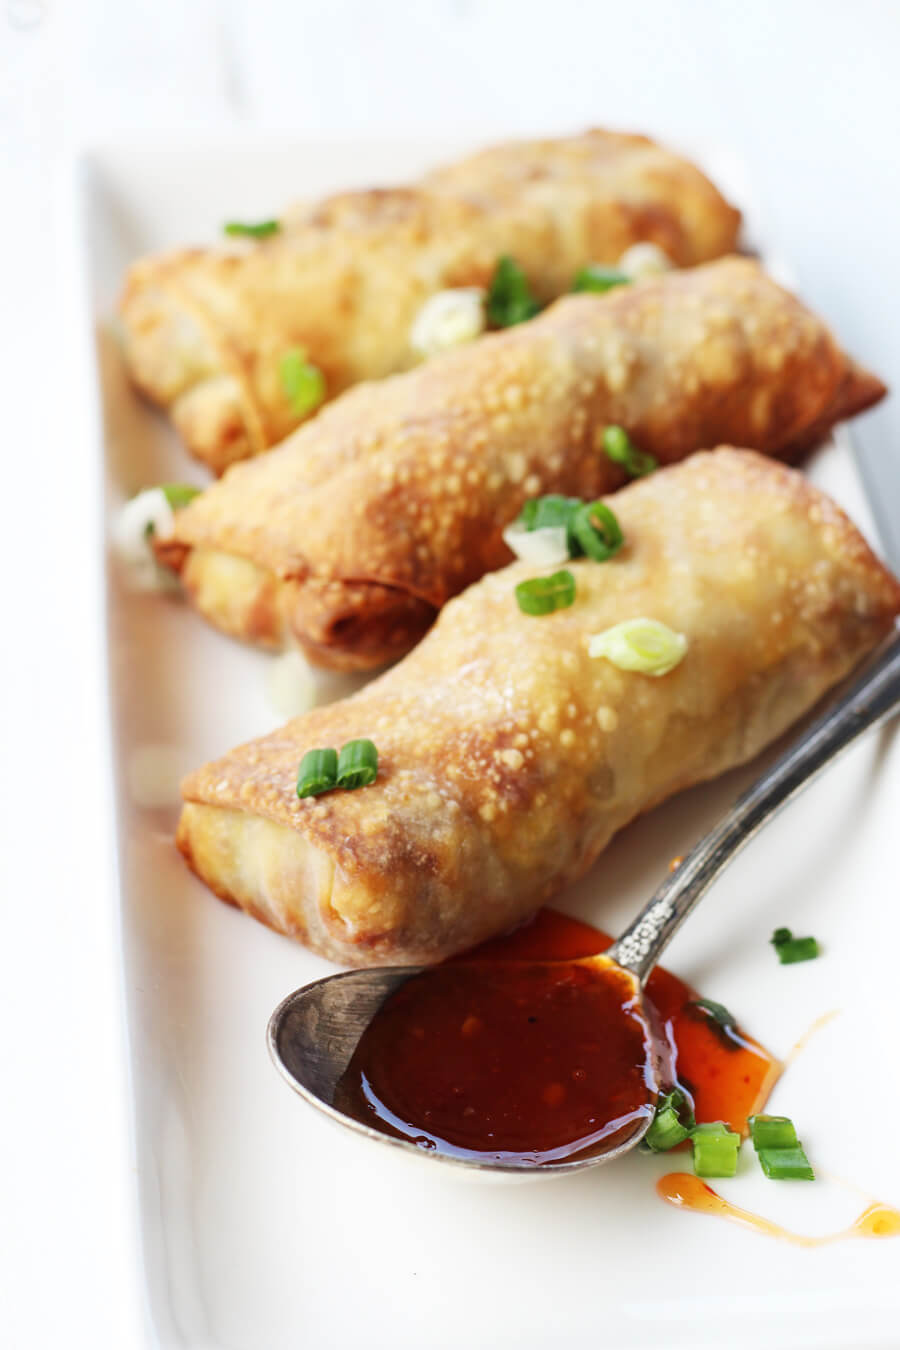 Crisp Asian-inspired egg rolls with savory pork and tender cabbage on the inside....made with our air fryer. #eggrolls #airfryer